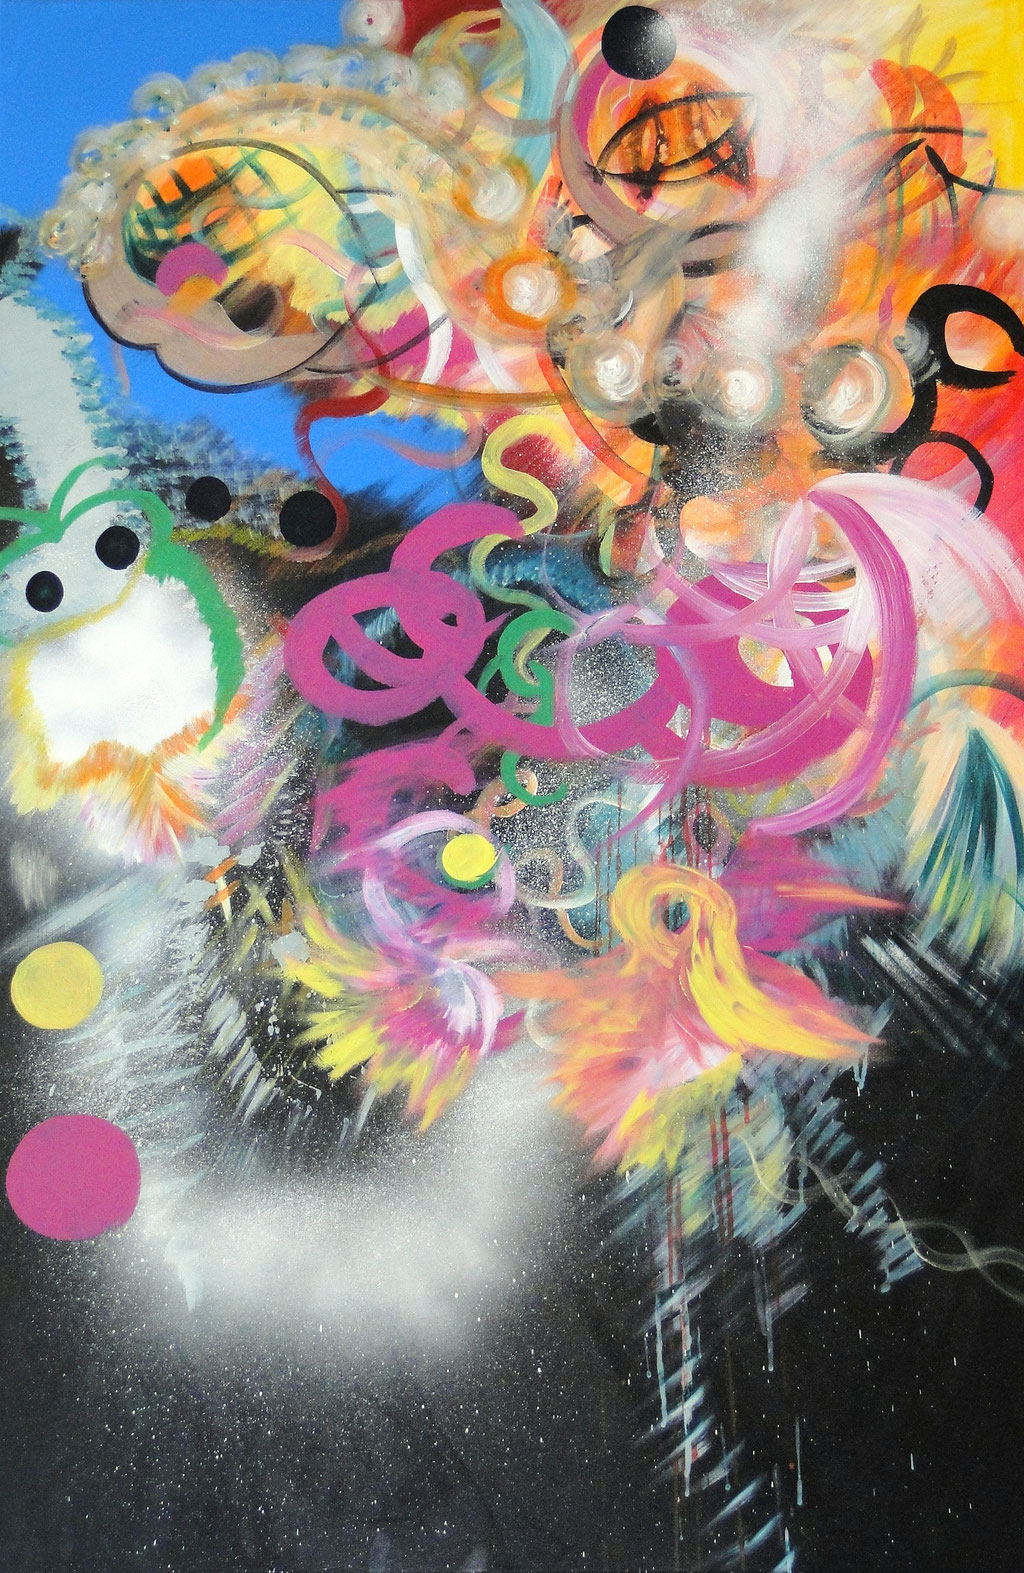 magic dreams    120 cm x 80 cm